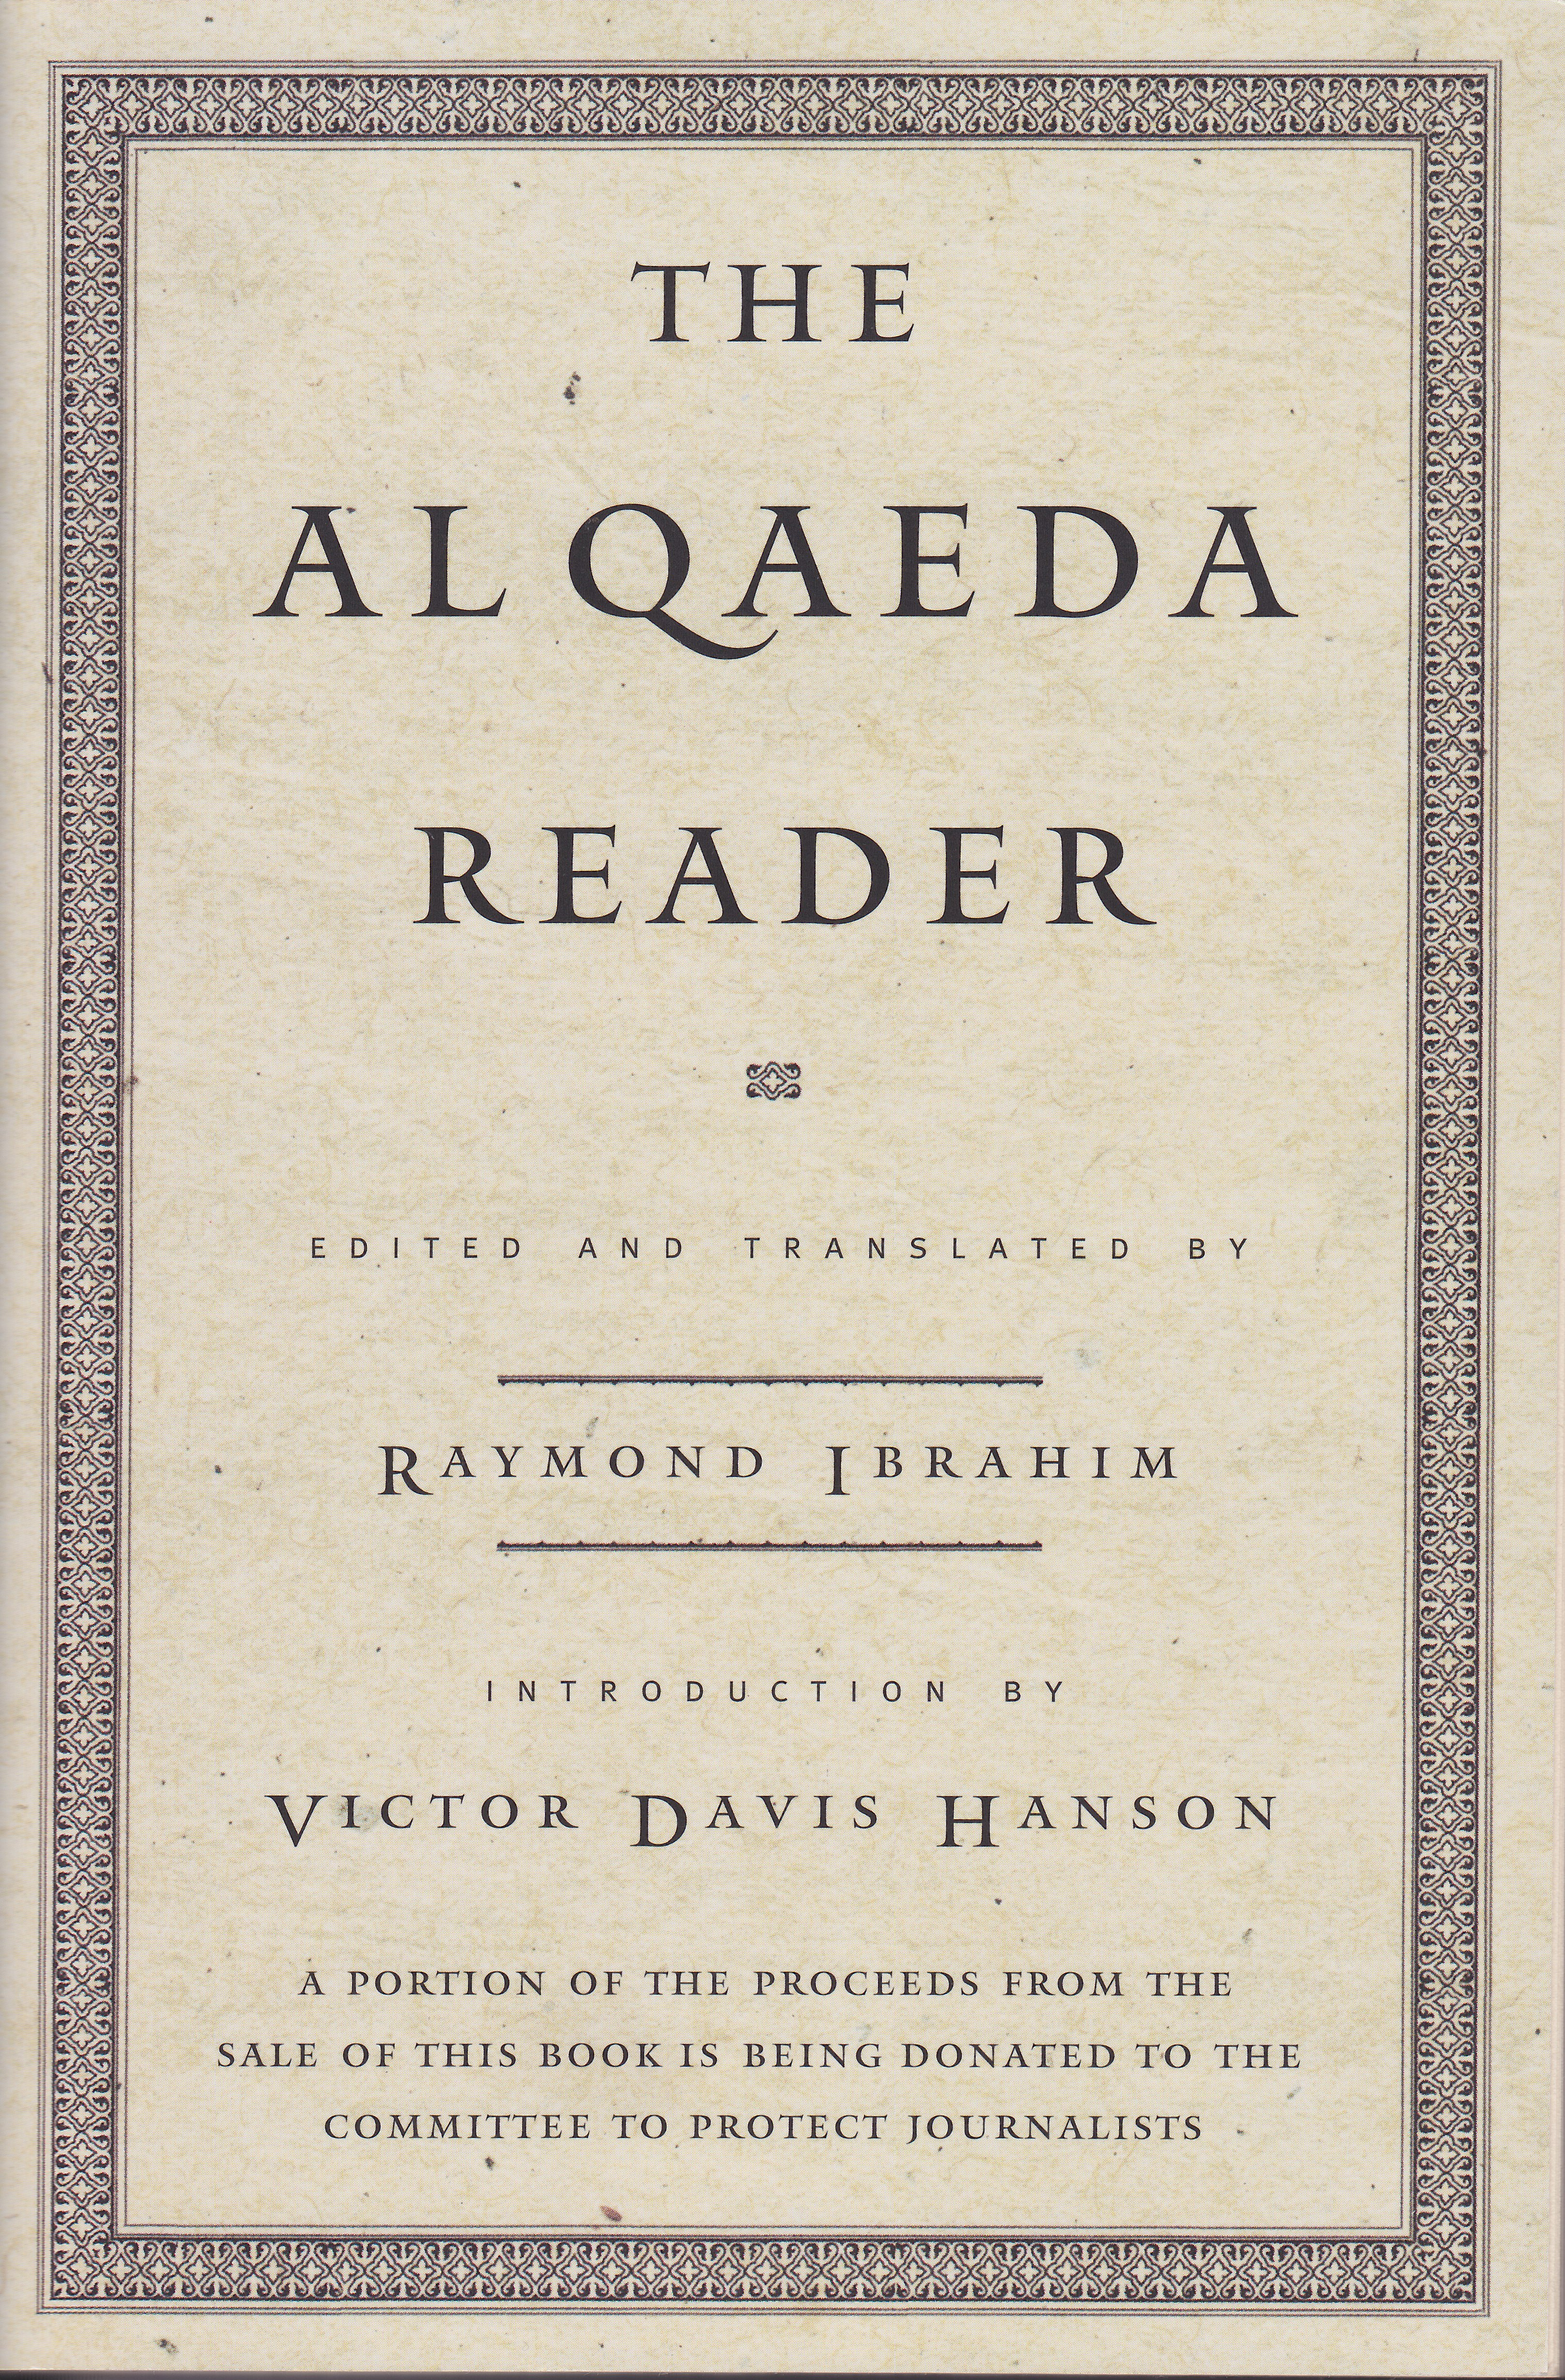 al qaeda research In this regard, this thesis promotes the study of the al-qaeda network by   theoretical framework for political psychology research on al-qaeda initially.